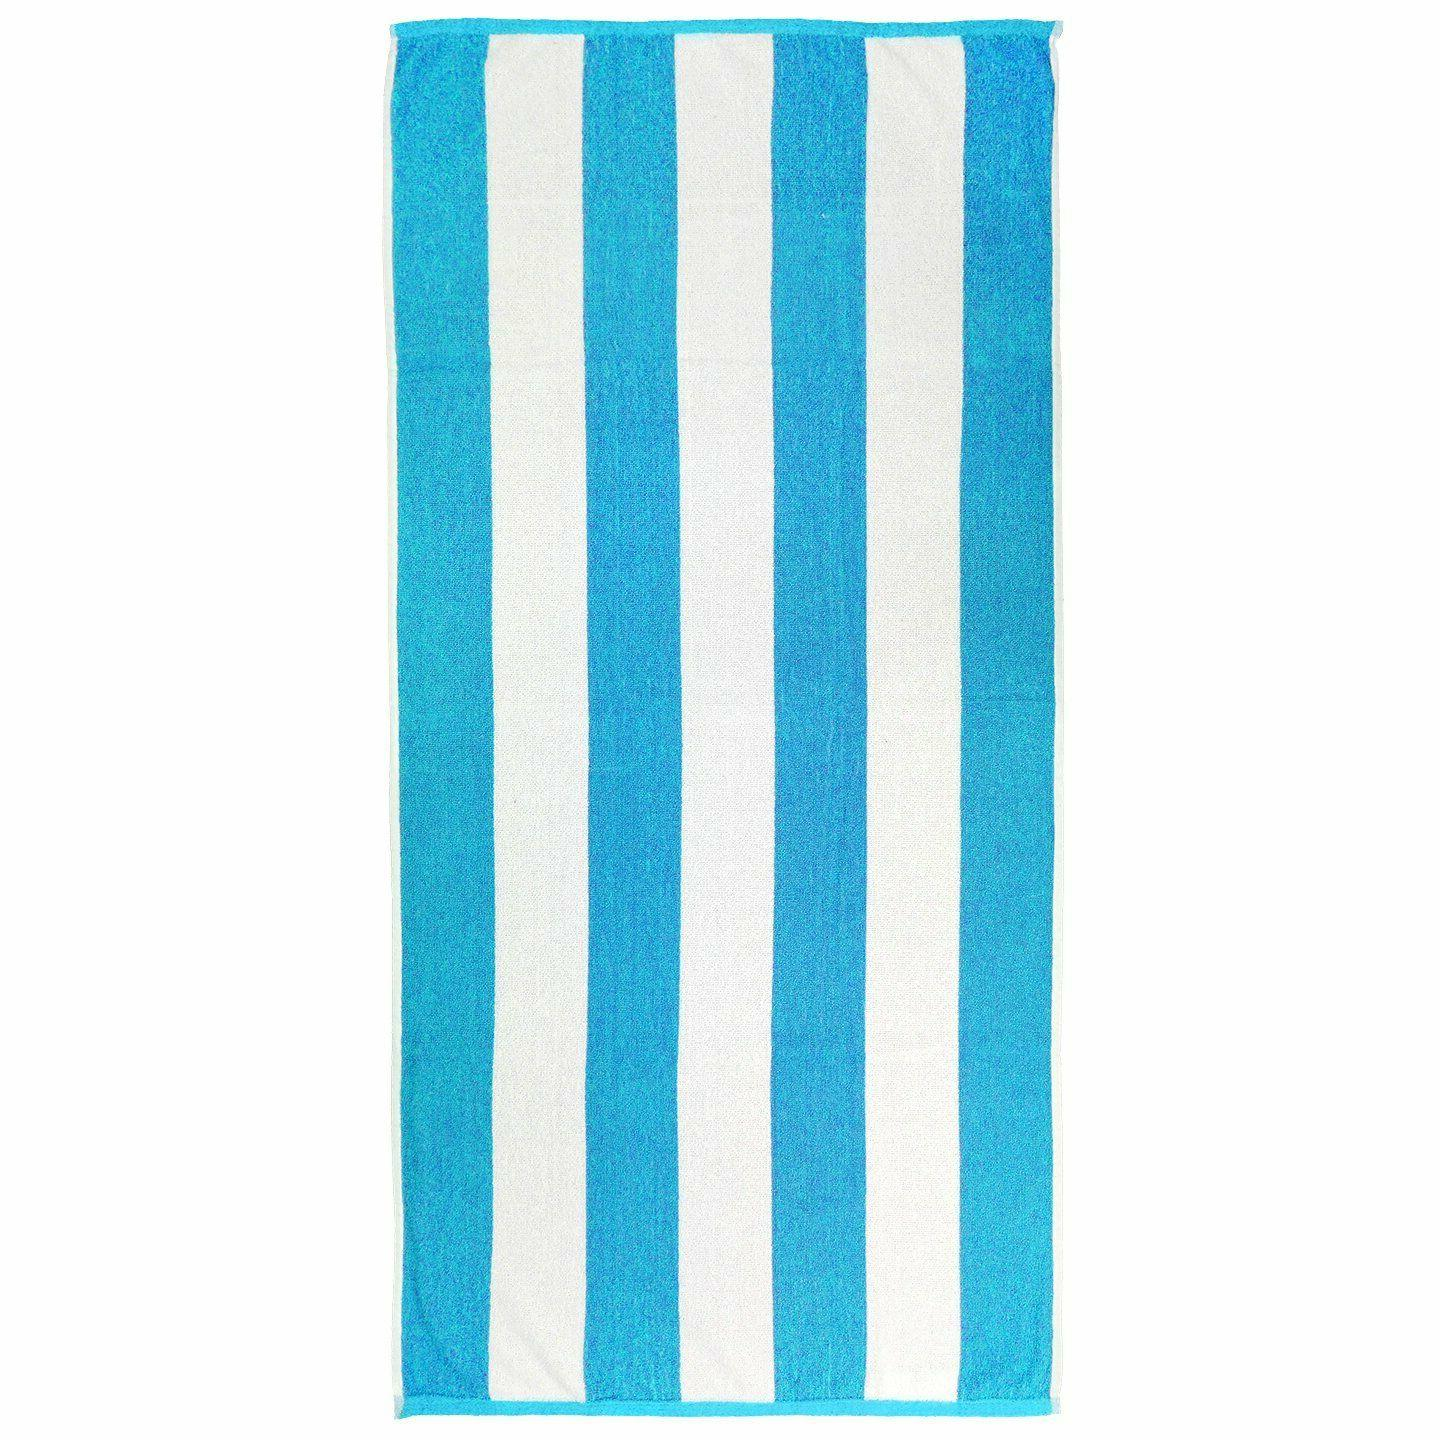 Kaufman-6-Pack Towel Cabana Terry Cotton 30in 60in